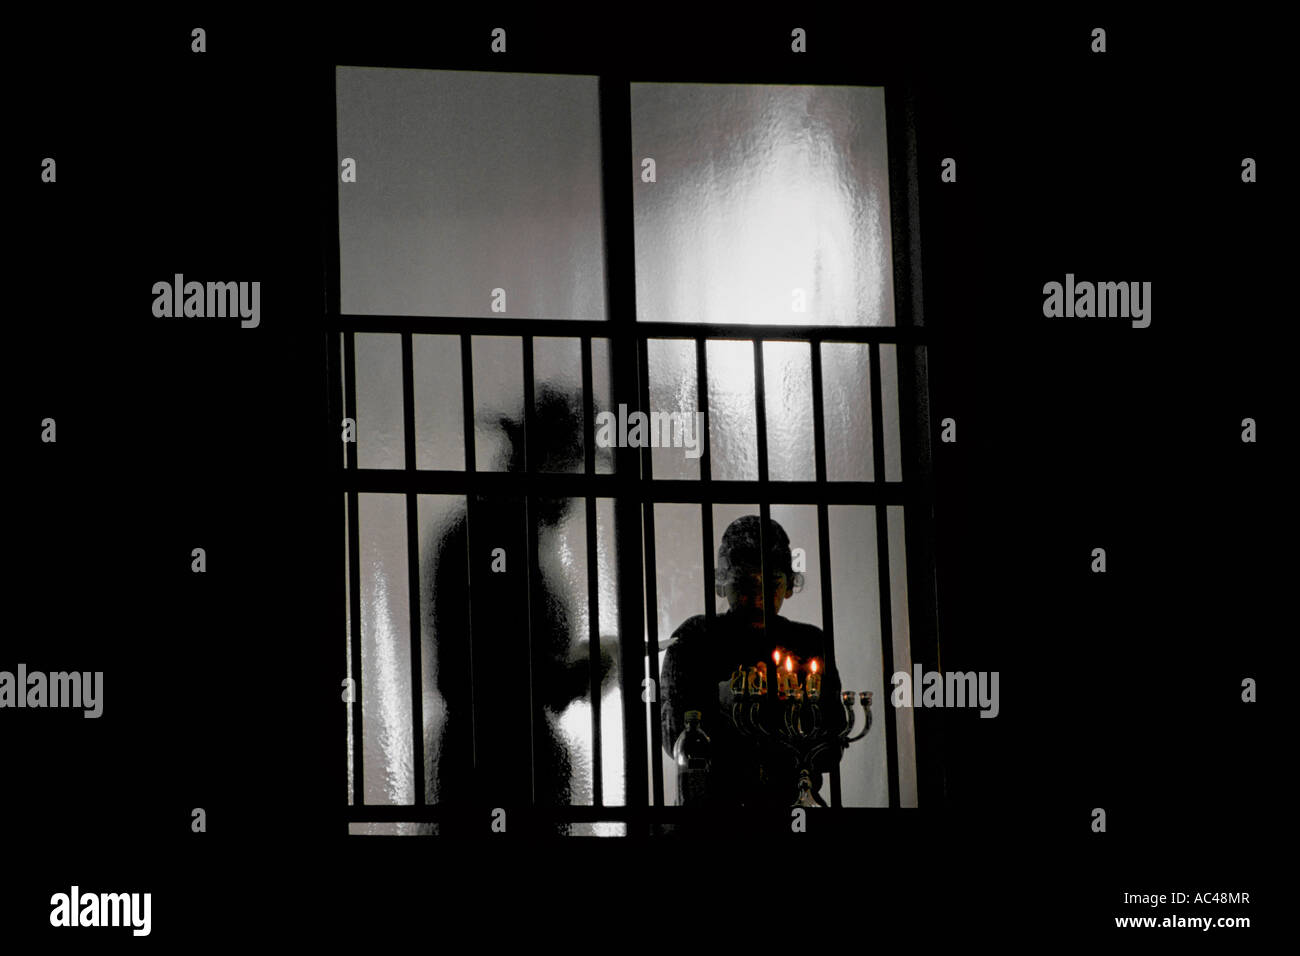 Israel. A Jewish Orthodox father and son, silhouetted through a window, light candles during the Jewish holiday - Stock Image